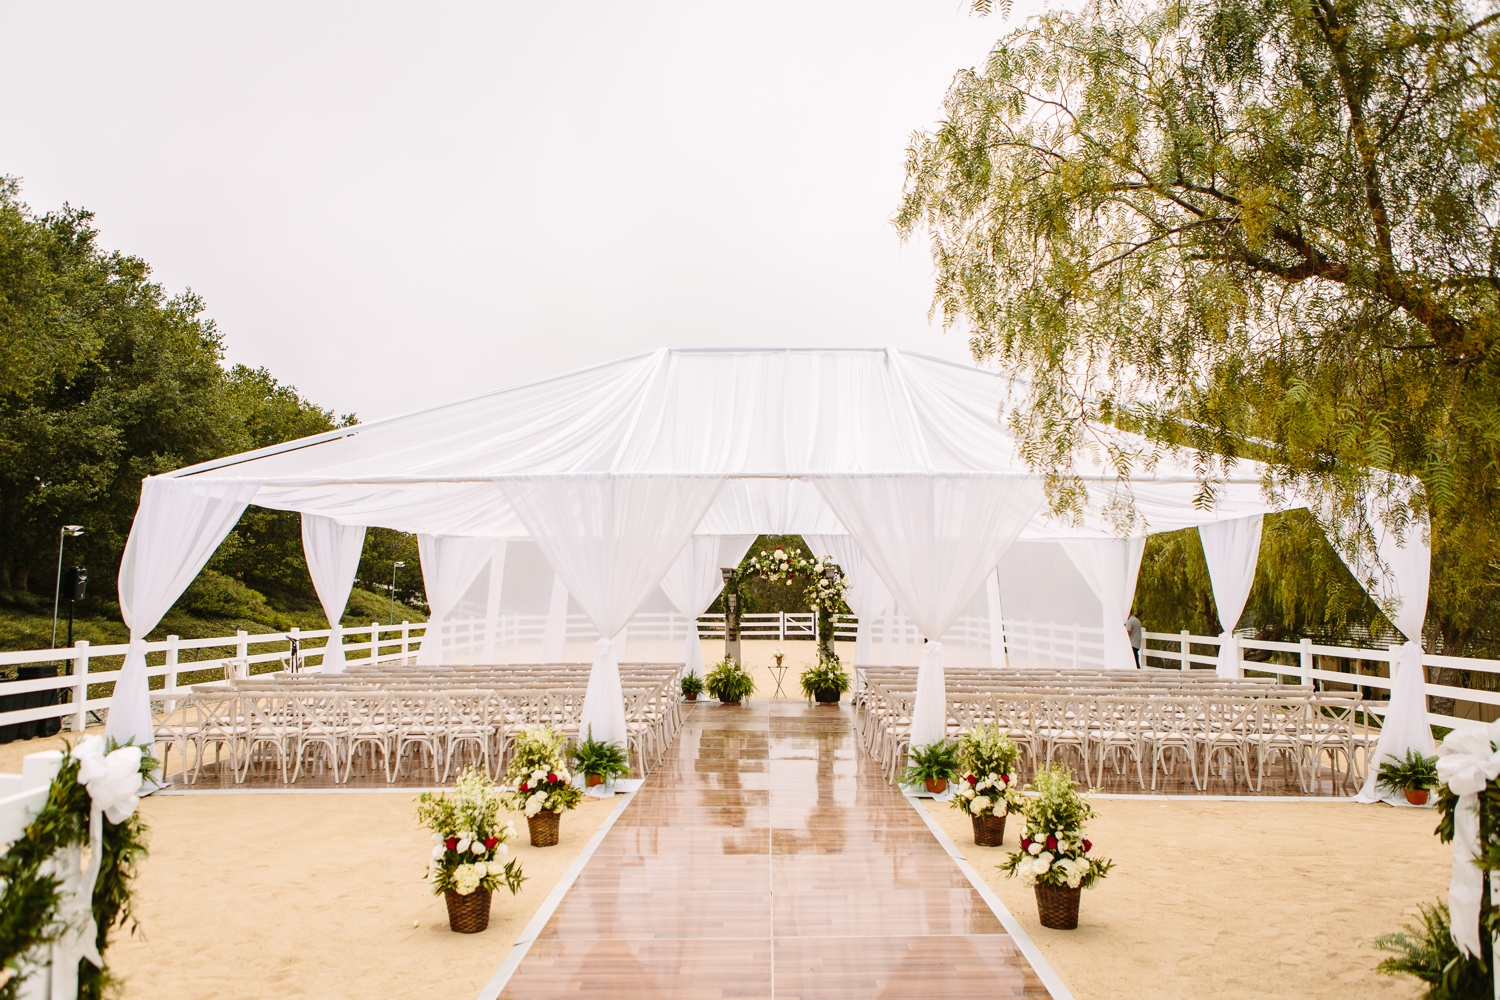 LVL Weddings and Events Private Estate Palos Verdes